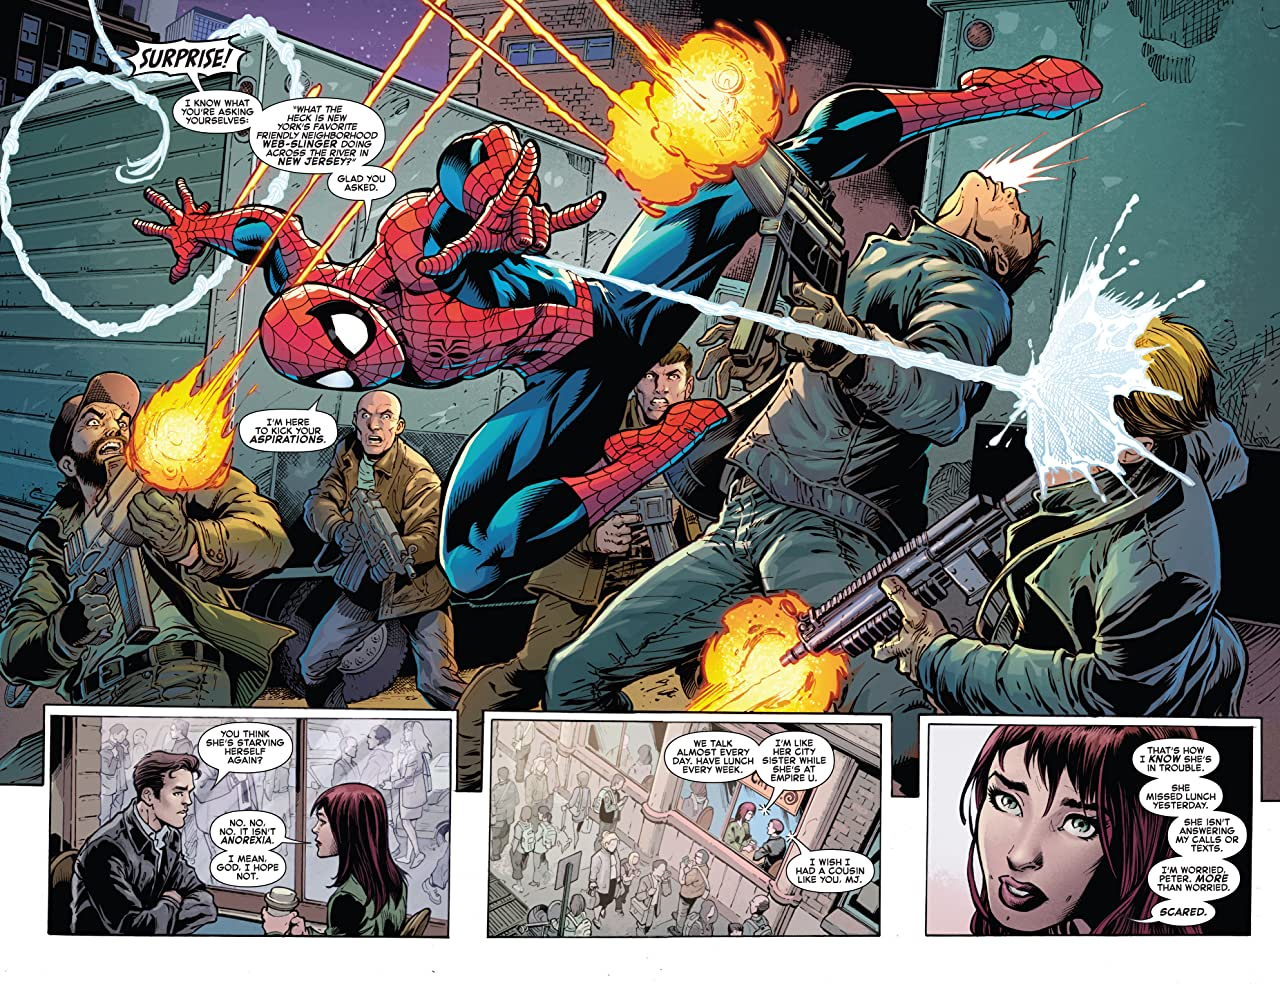 Amazing Spider-Man: Going Big (2019) #1